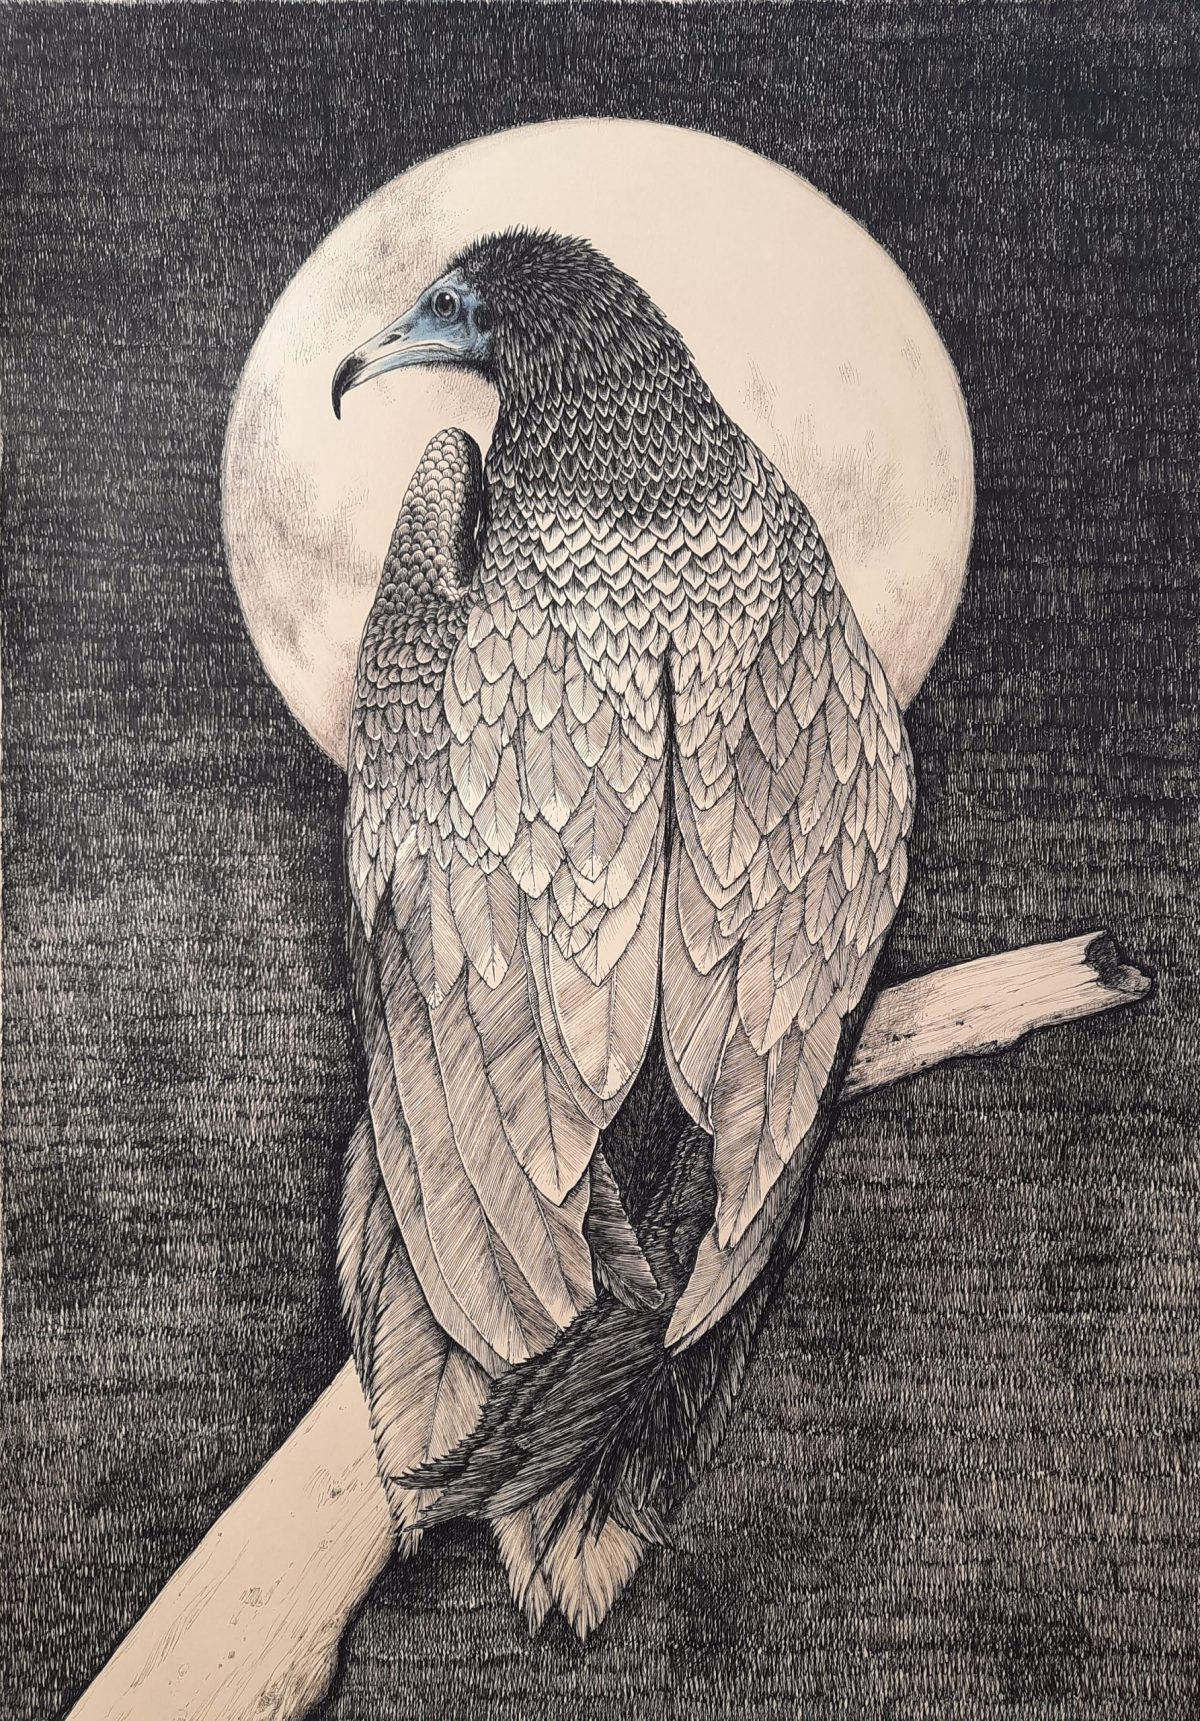 Art work by Sara Polini titled Egyptian Vulture